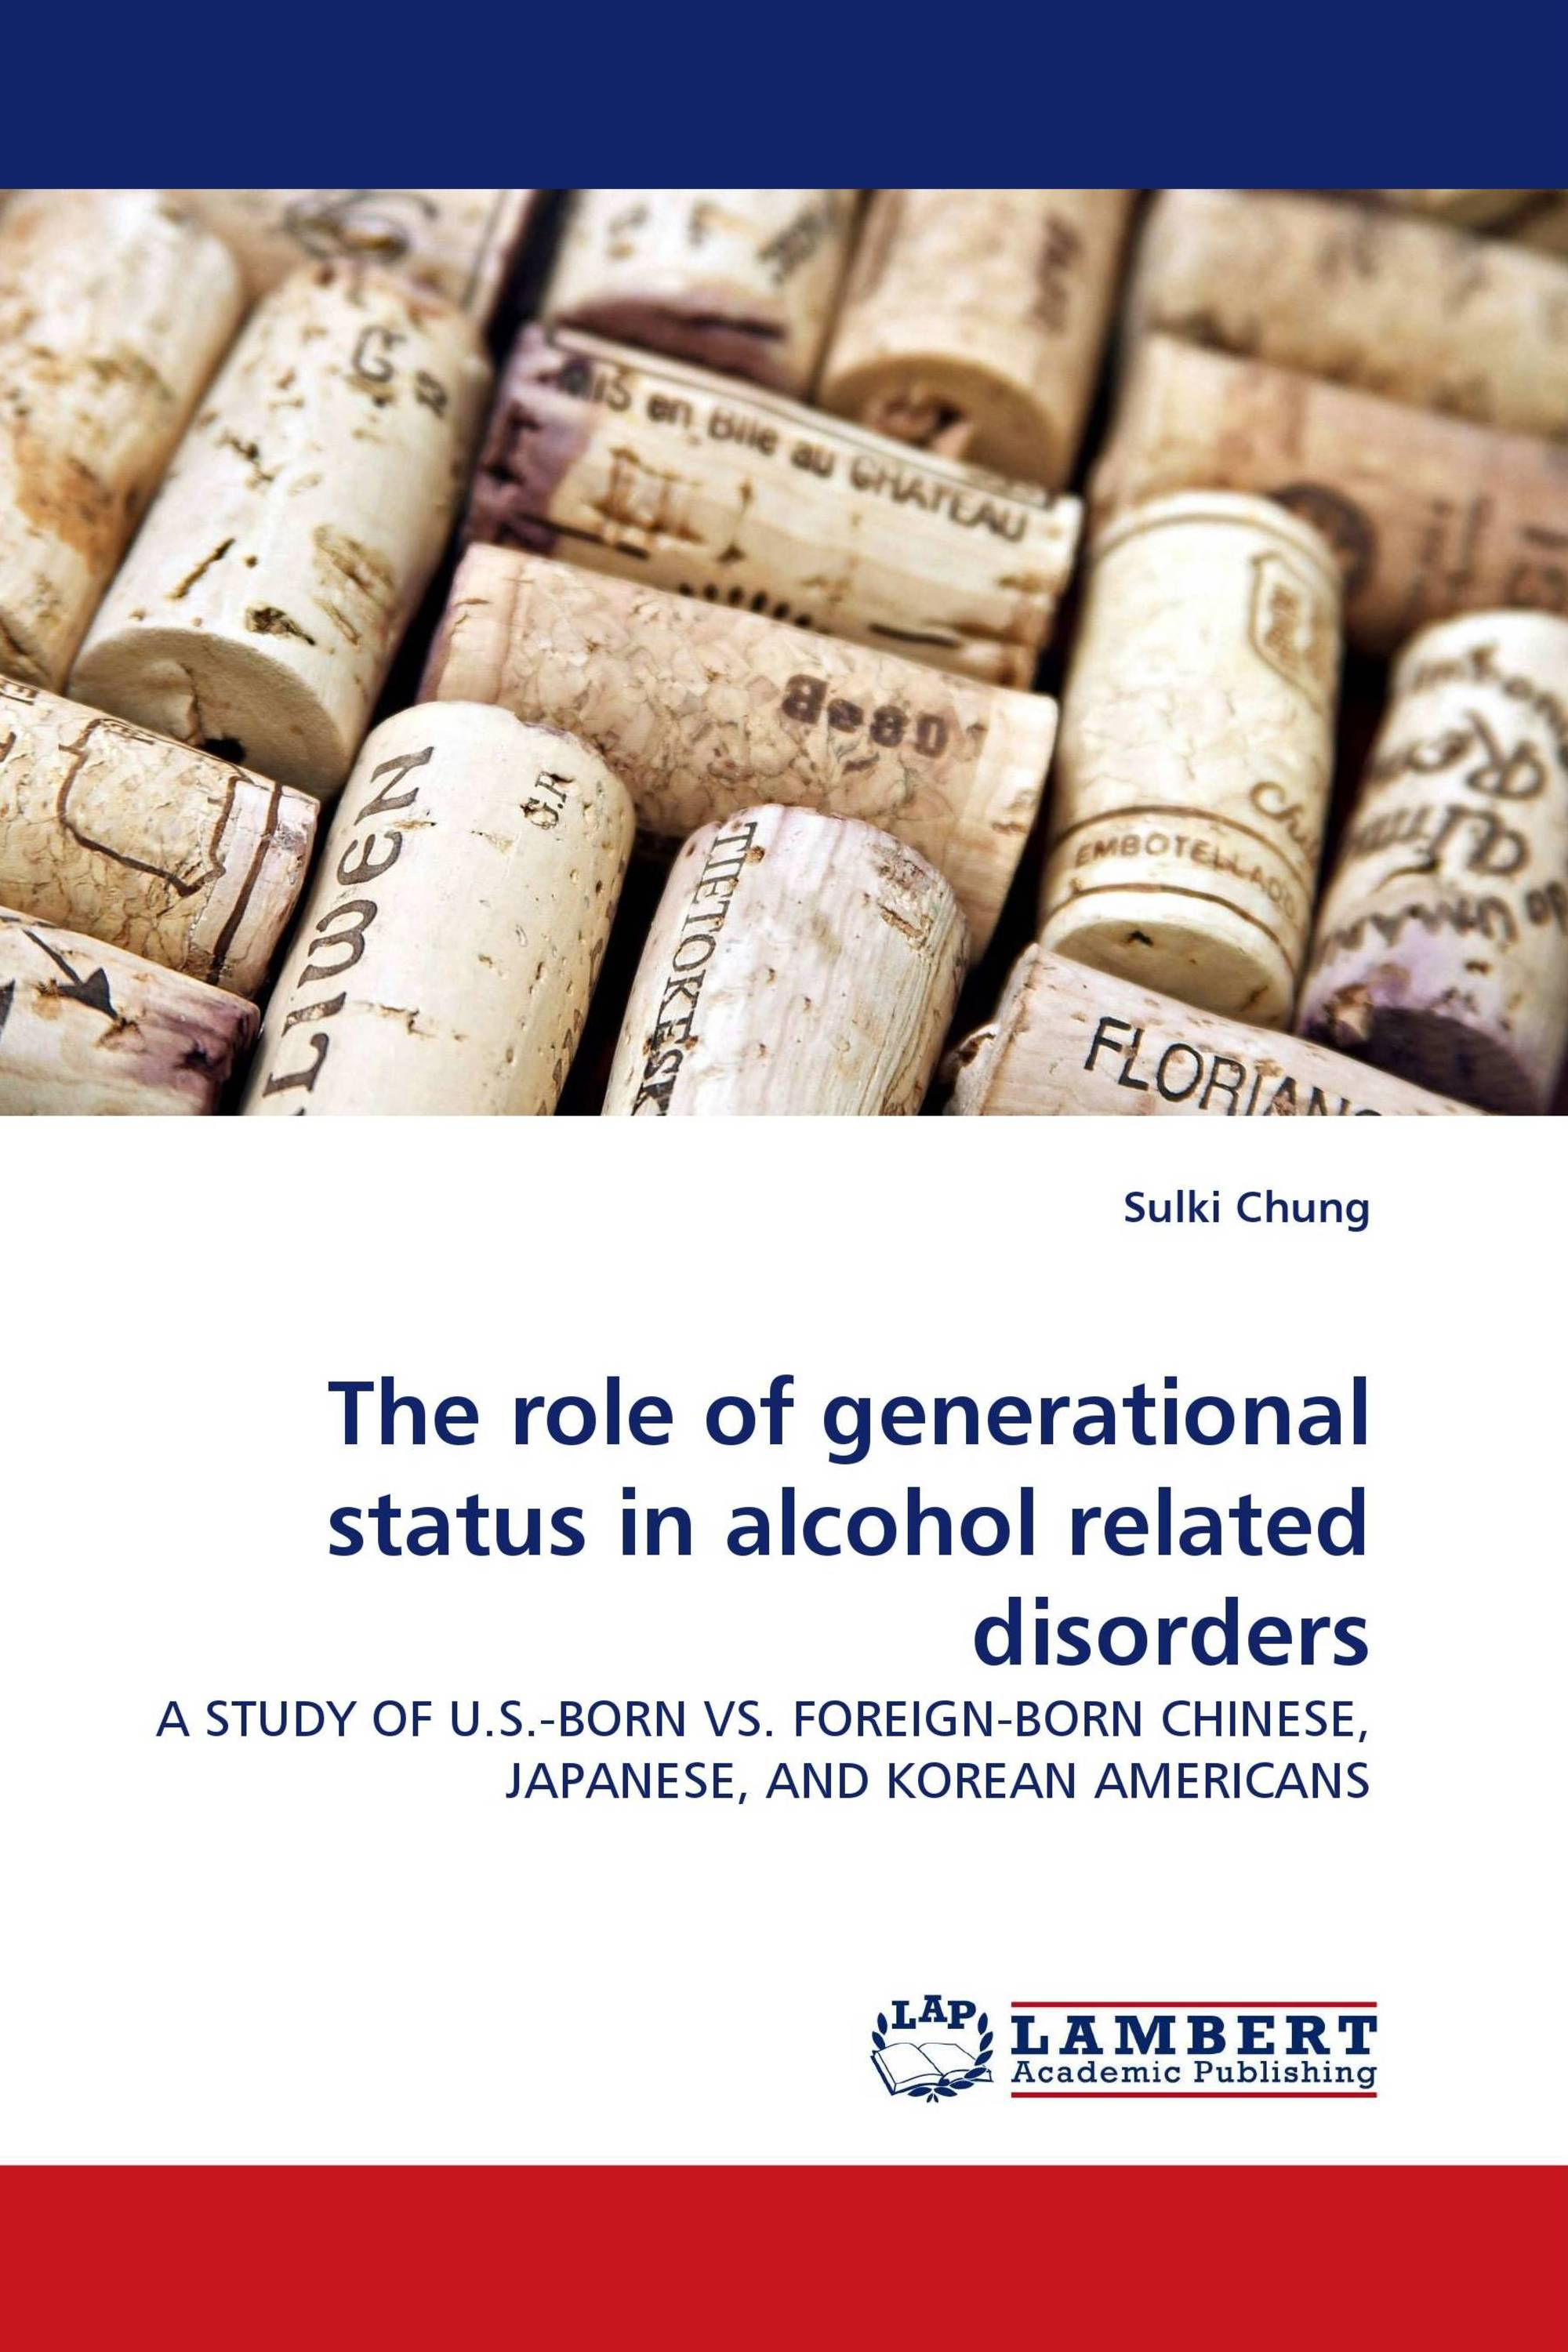 The role of generational status in alcohol related disorders